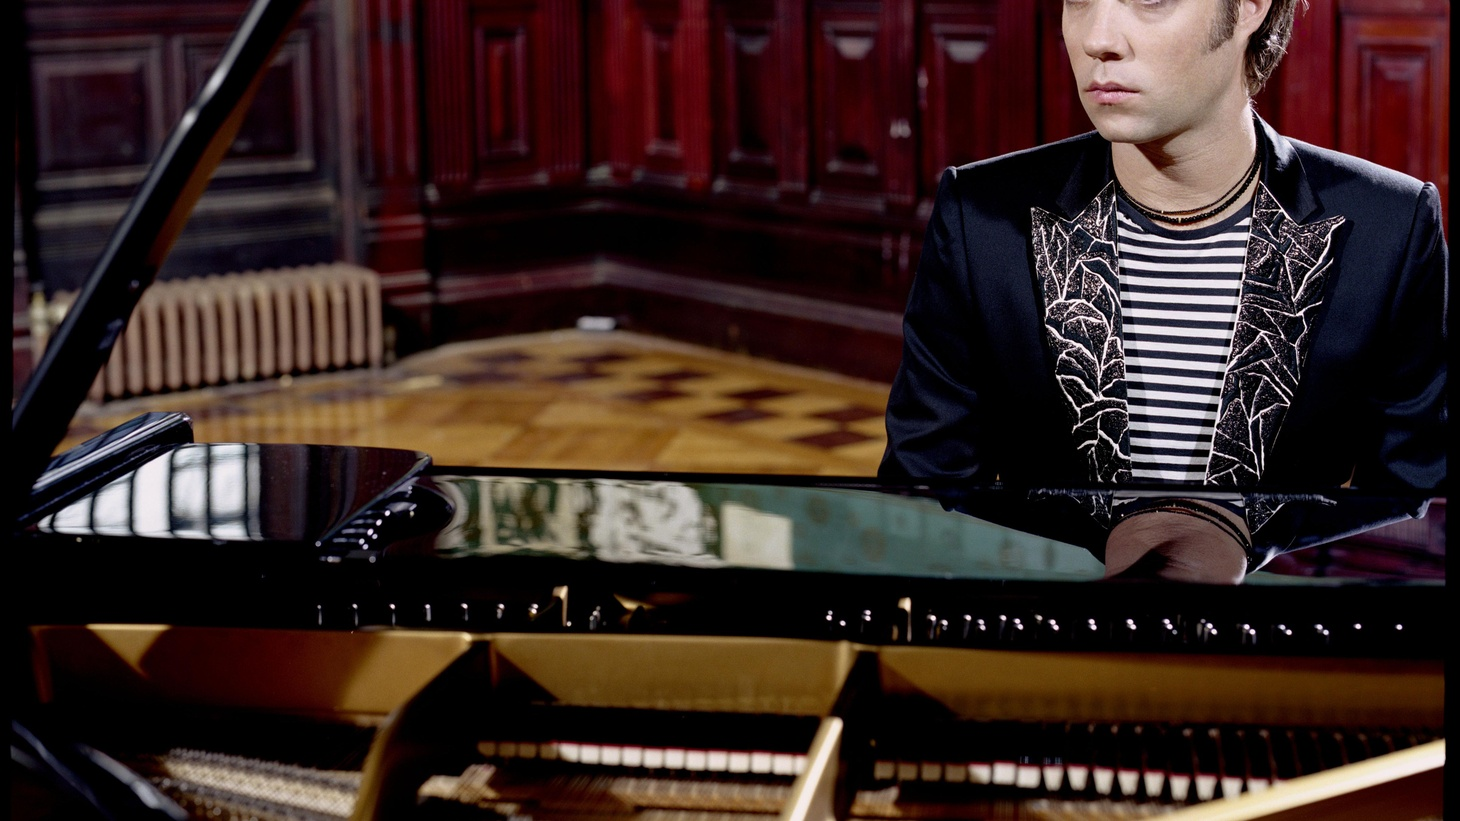 """When Rufus Wainwright sits at the piano, anything can happen. He can belt out a song that's pure joy or capture our hearts with thoughtful bittersweet beauty. On Today's Top Tune, he simply shares his thoughts on """"True Loves"""", from his album, All Days Are Nights: Songs for Lulu."""